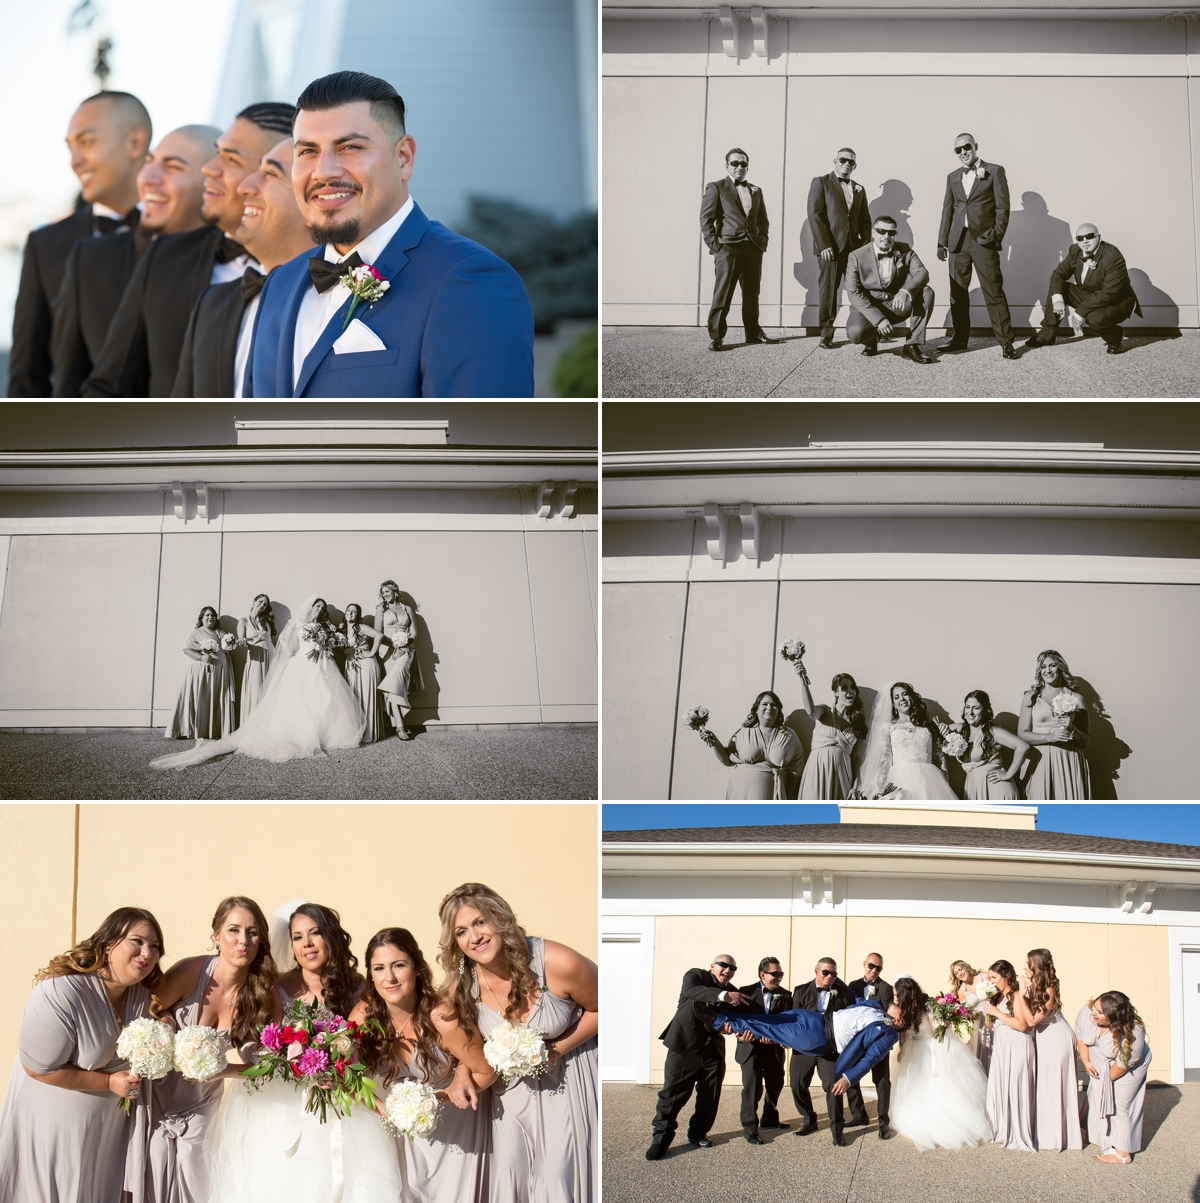 hamilton-wedding-photography-jj-wedding-0011